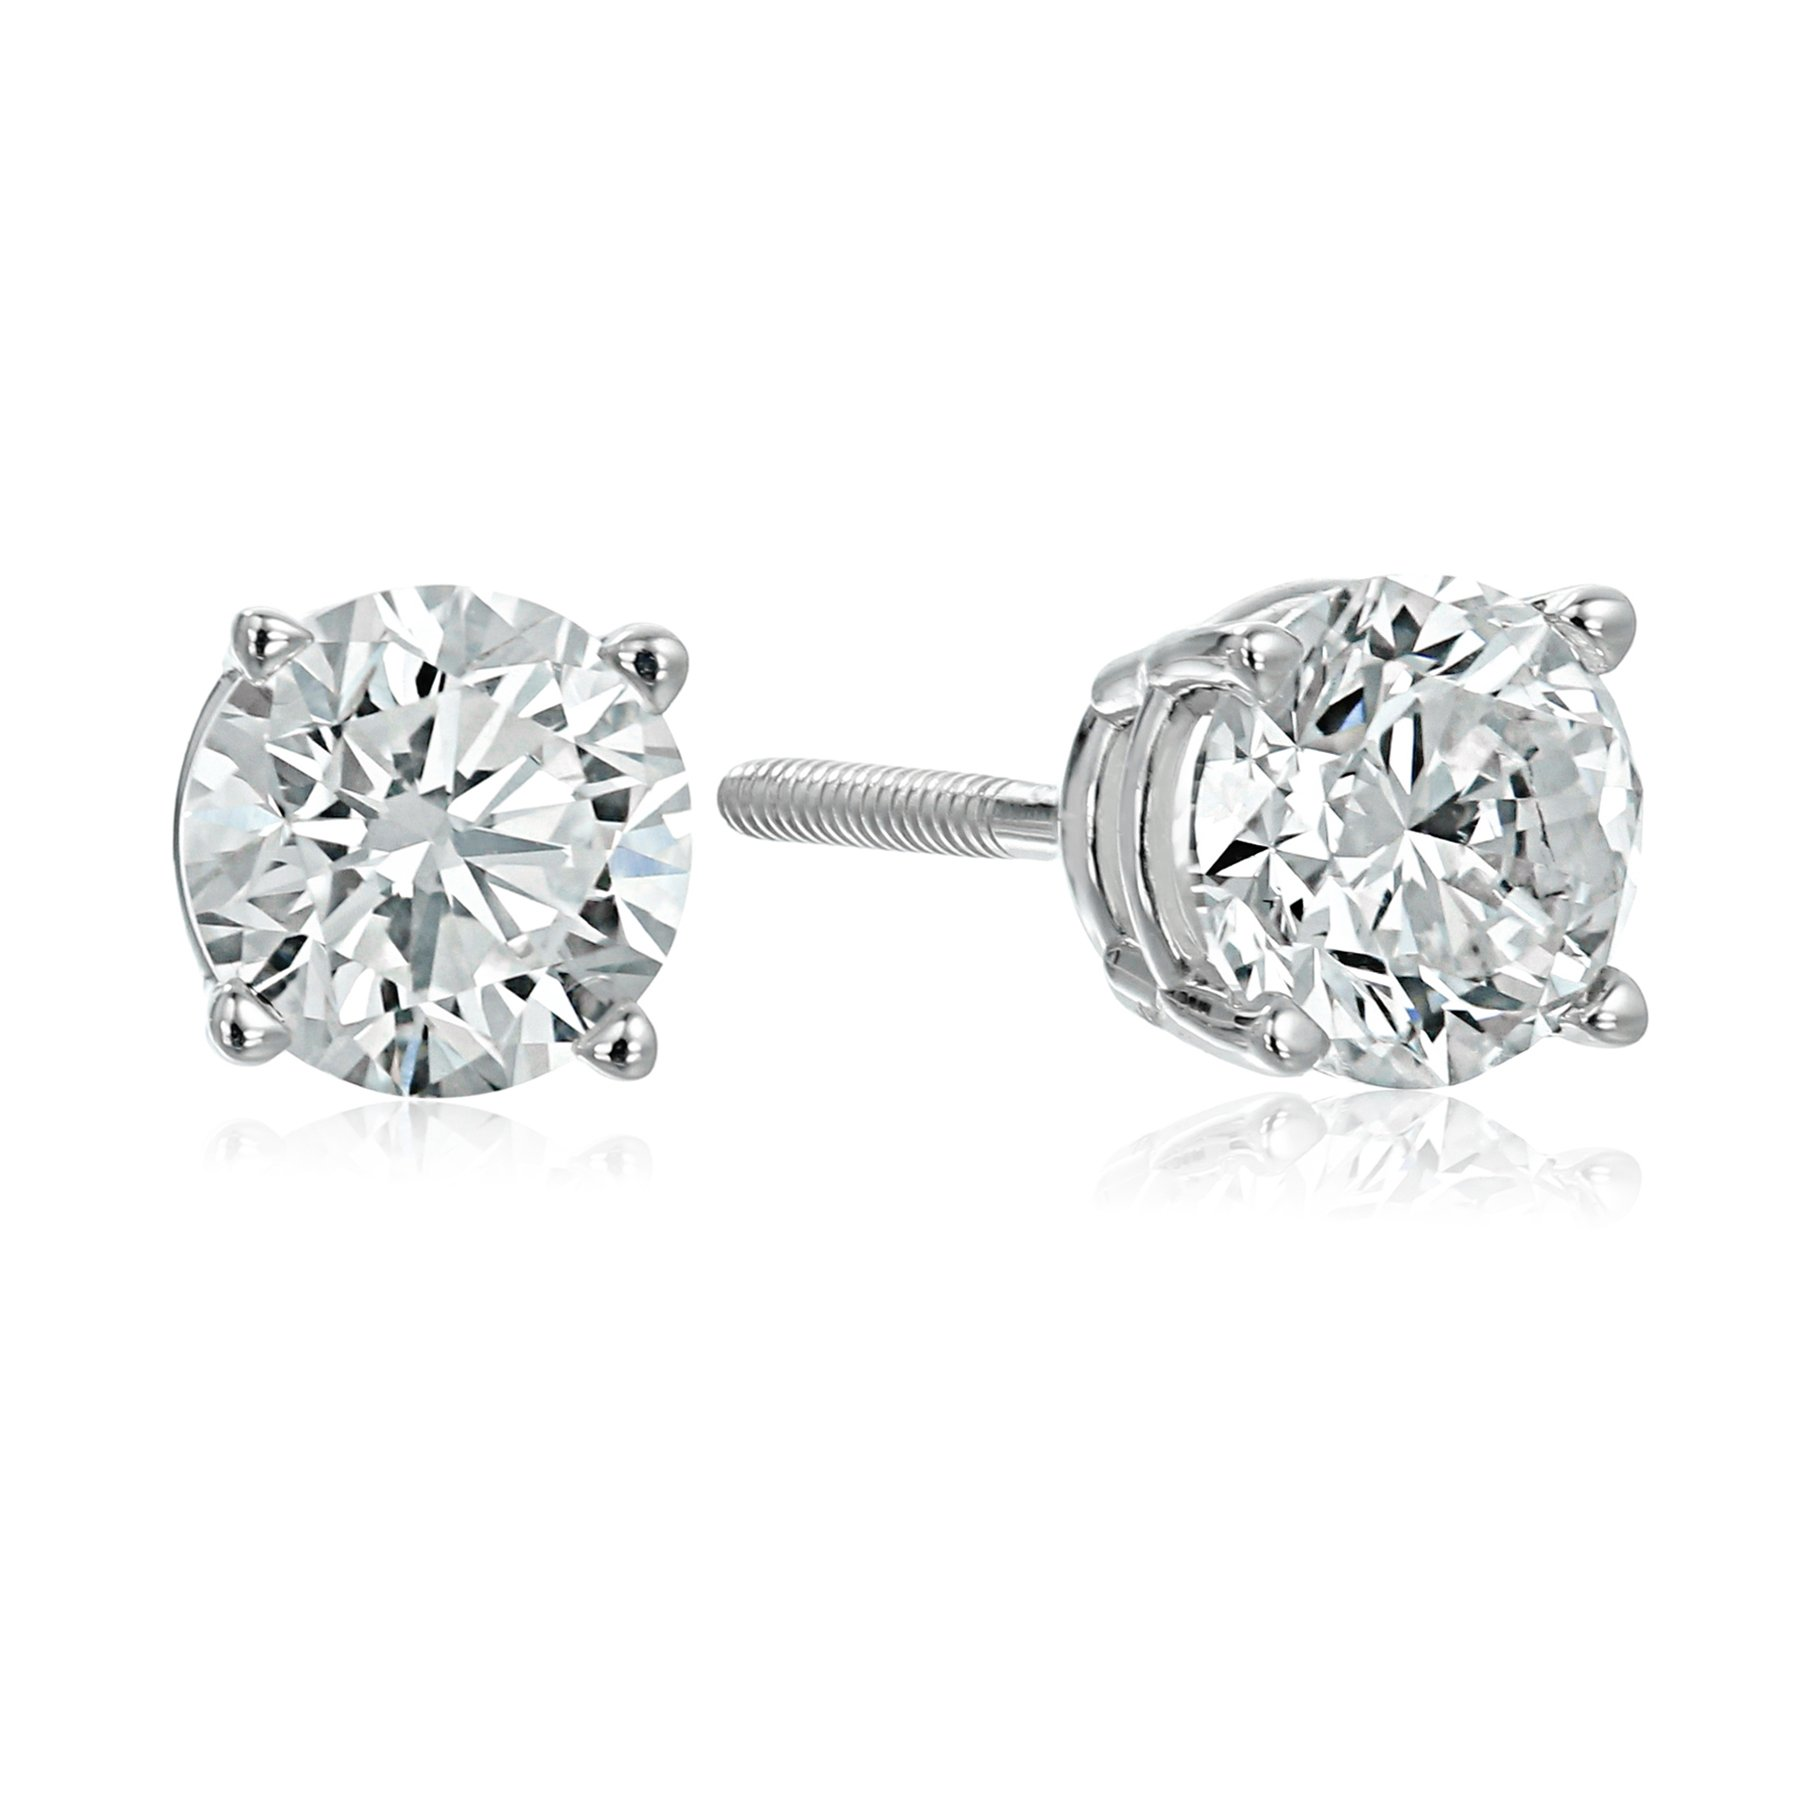 IGI Certified 14k White Gold Round Cut Diamond Stud Earrings (1 cttw, H-I Color, I1 Clarity)